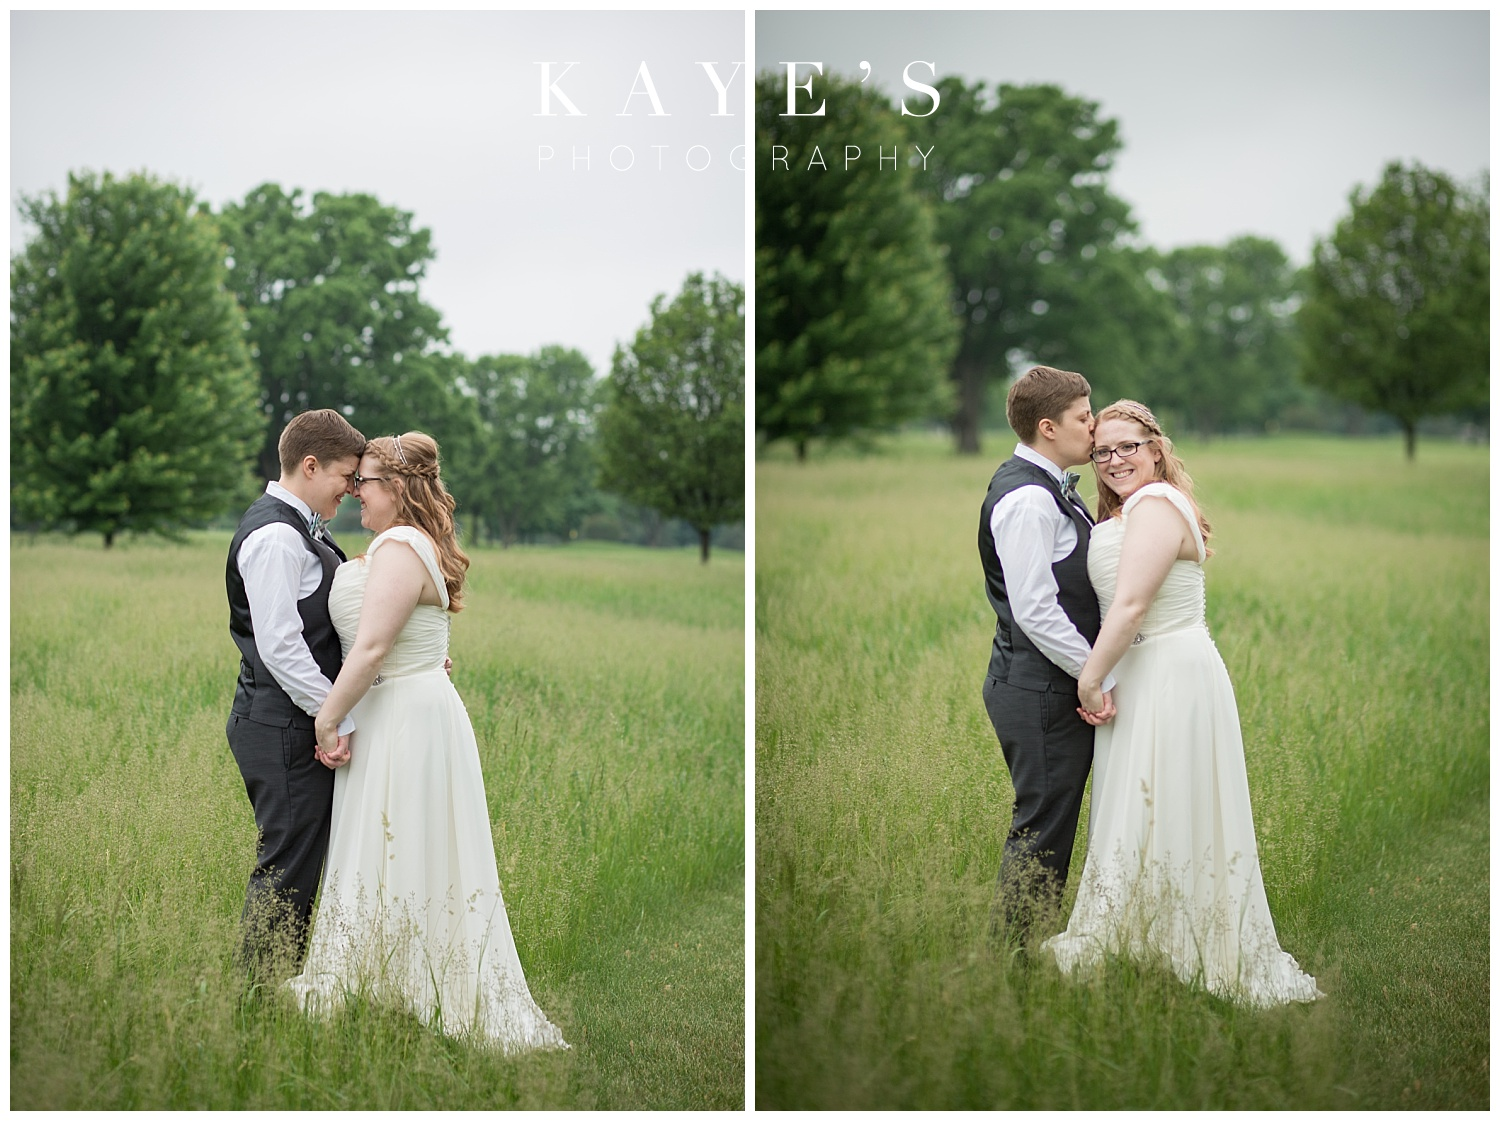 two brides at same sex wedding in linden michigan by kayes photography